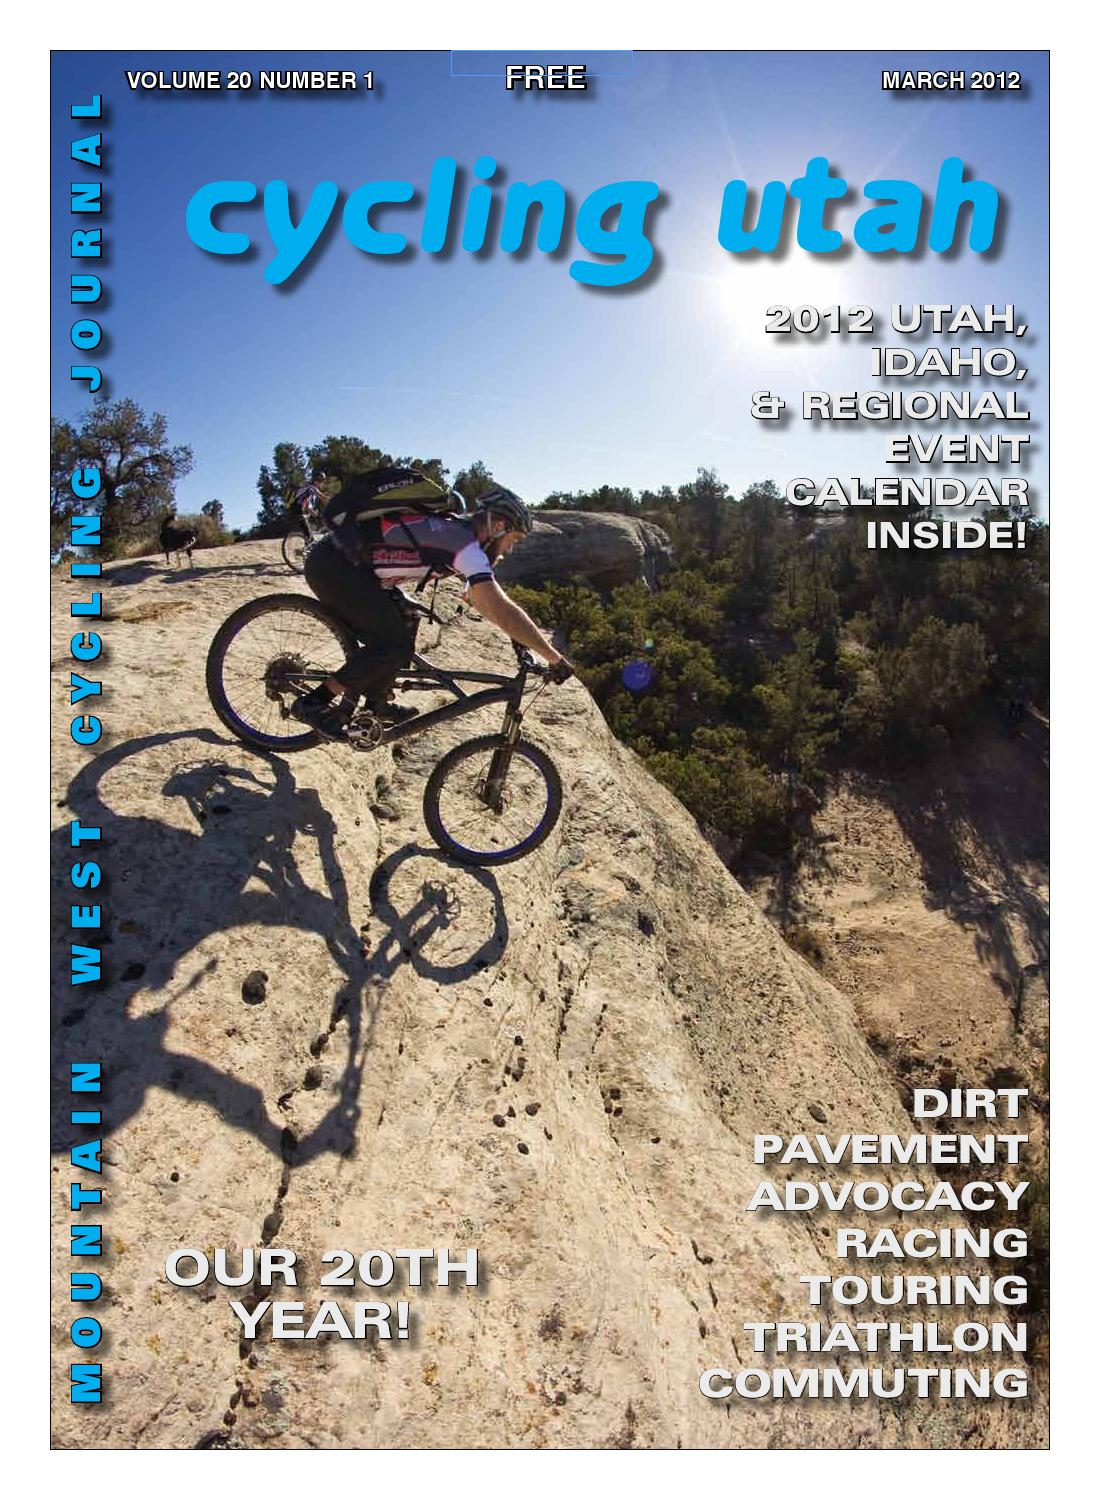 099c4d03d Cycling Utah s March 2012 Issue by Cycling Utah - issuu